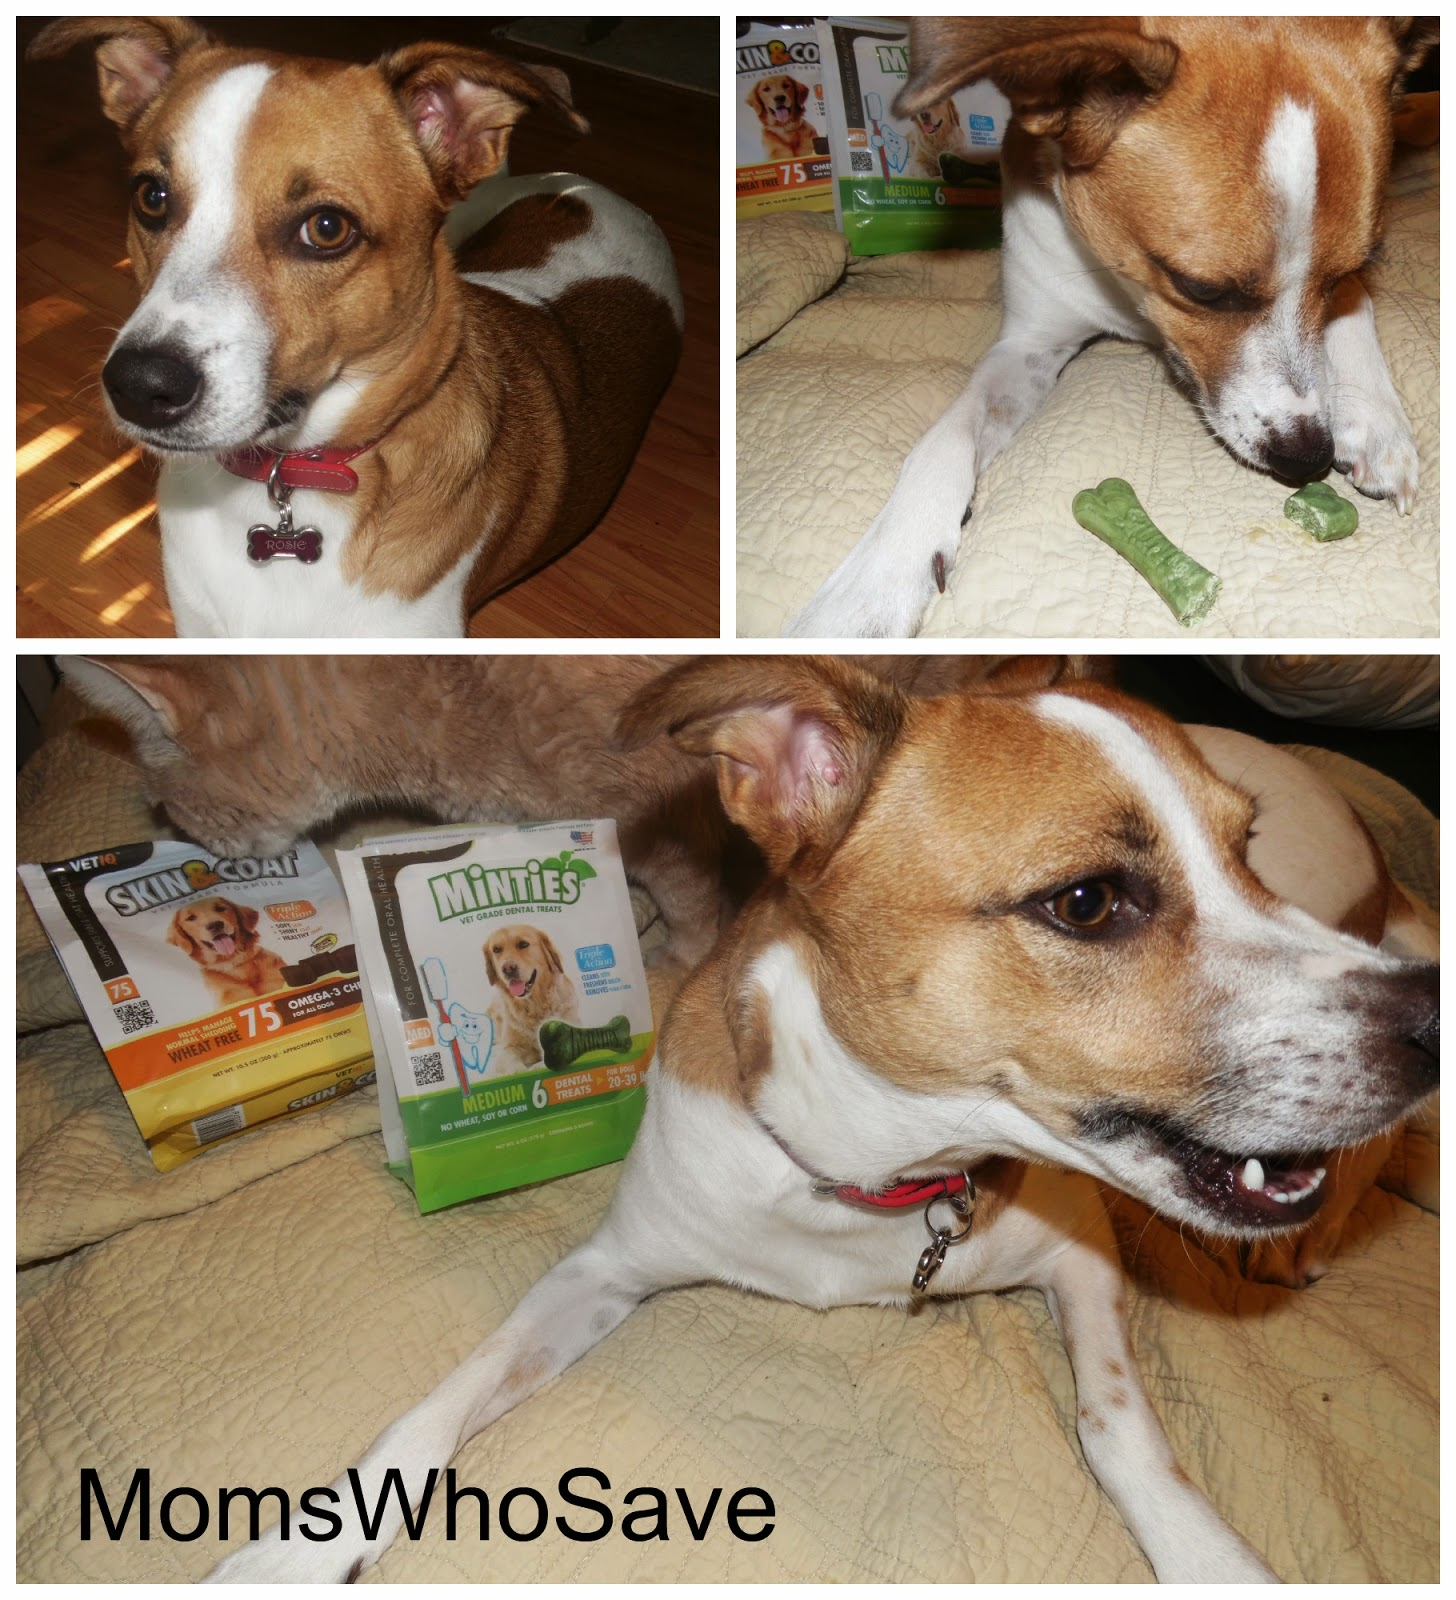 VetIQ Skin & Coat Omega-3 and Minties Dental Treats -- Vet-Recommended Quality, Made in the USA